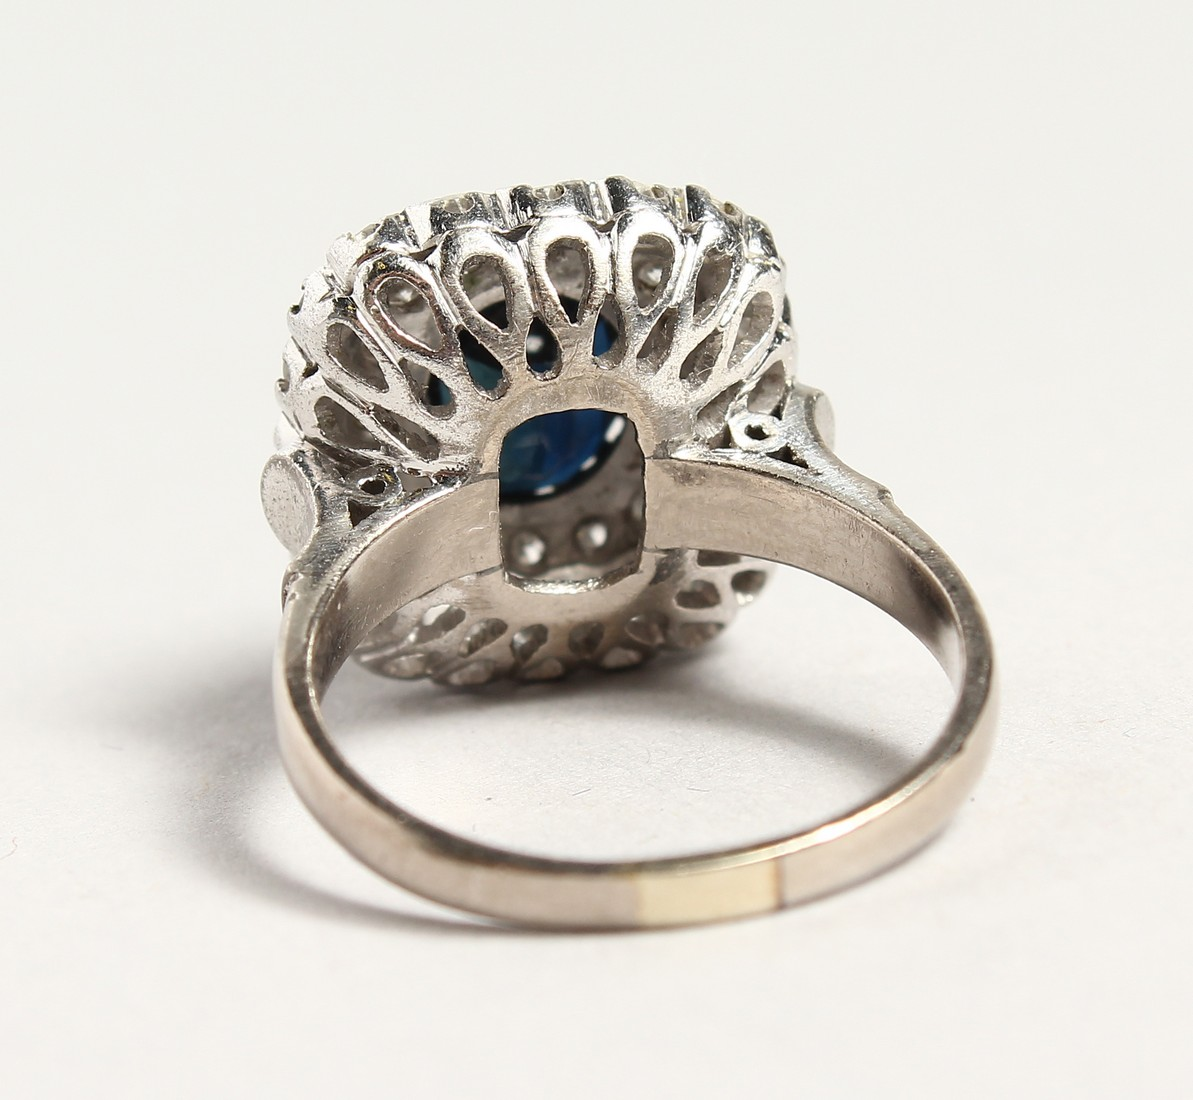 A SUPERB 18CT WHITE GOLD SAPPHIRE AND DIAMOND CLUSTER RING. - Image 6 of 6